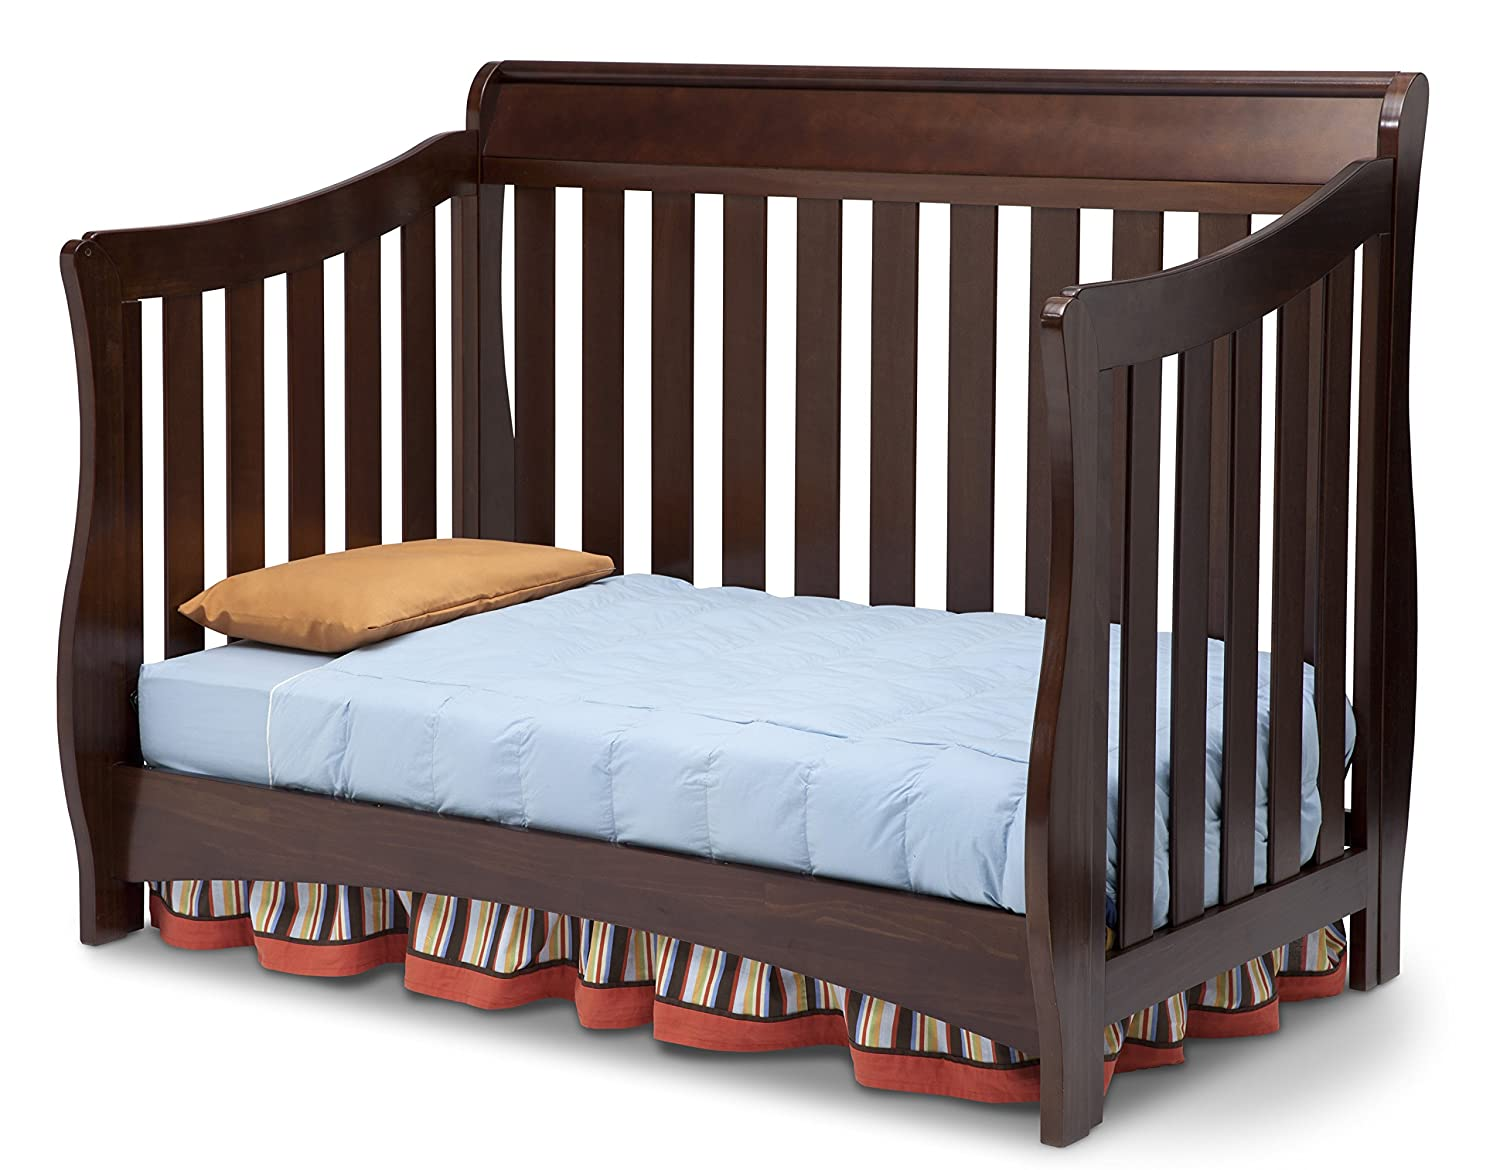 children series convertible to and s gallery delta in bed toddler nursery converting bentley mattress crib baby